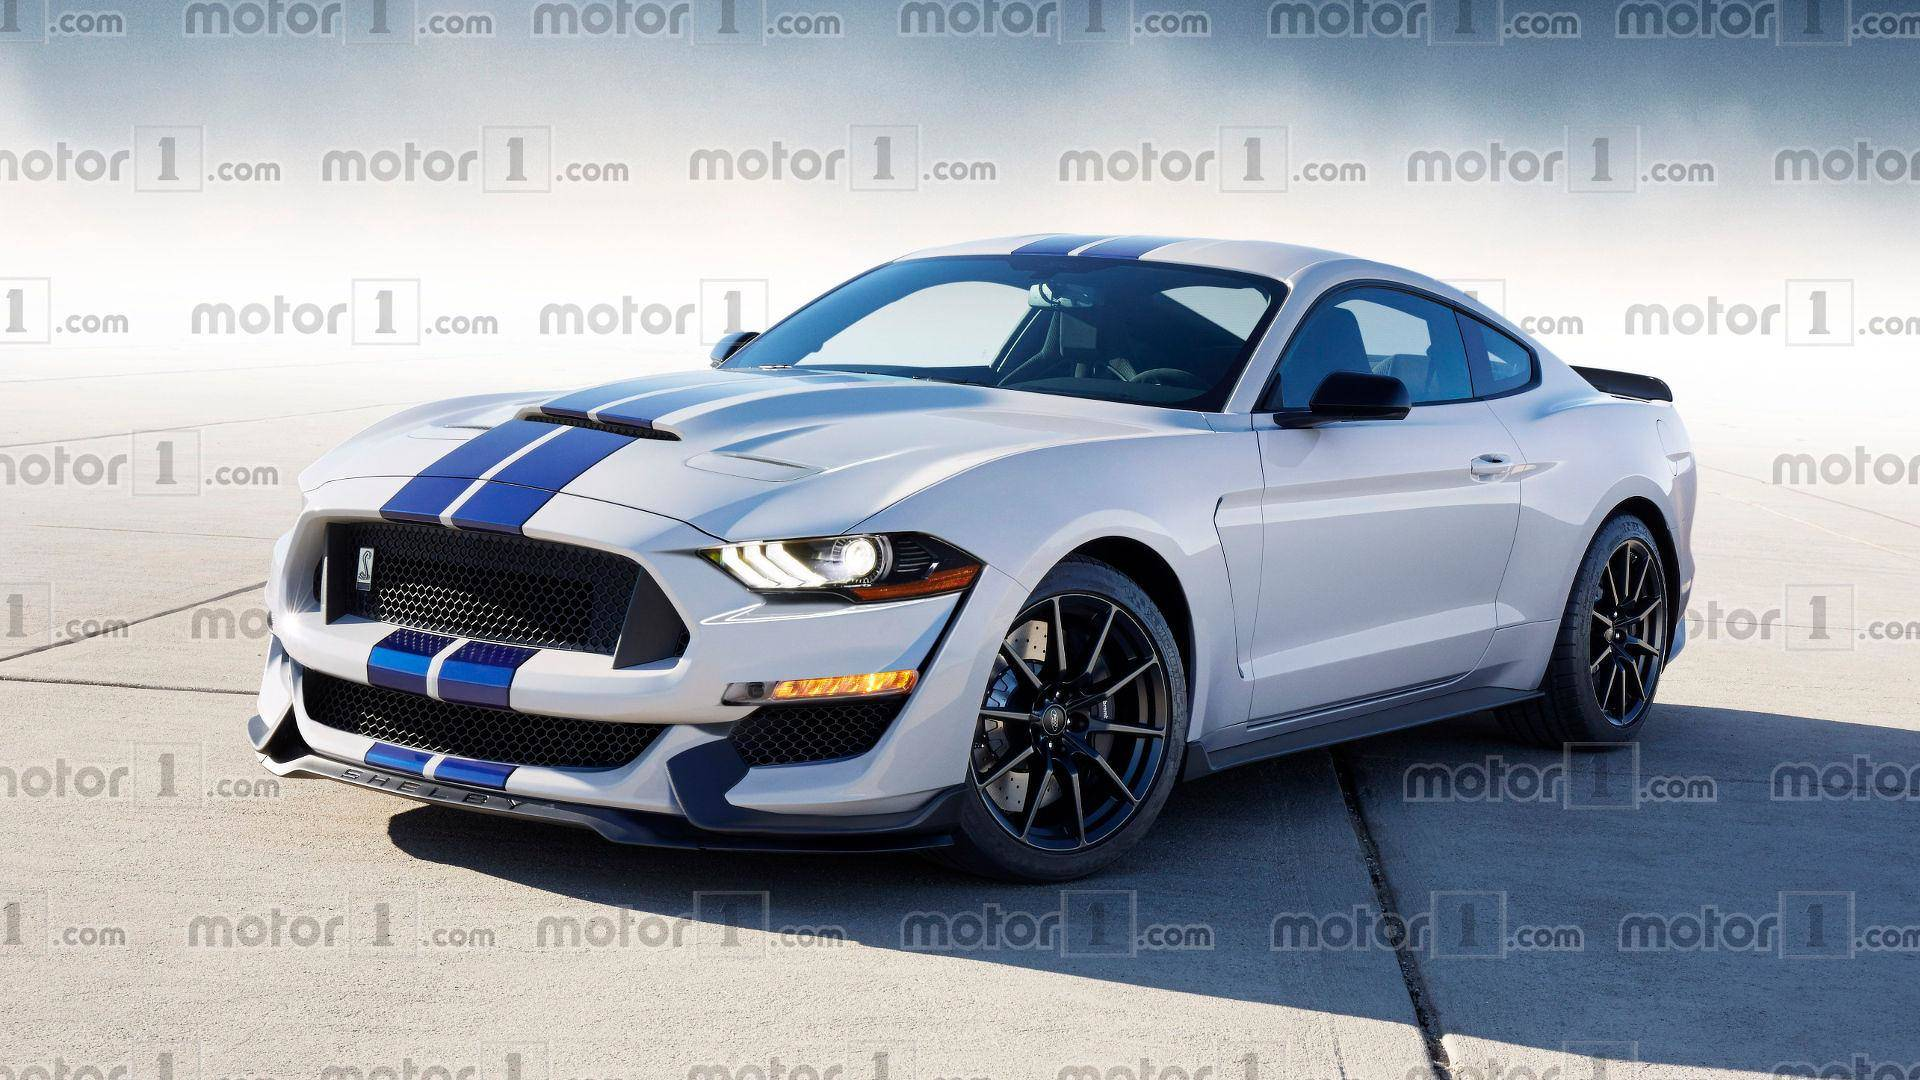 2018 2019 2020 Ford Cars: 2019 Ford Mustang Super Snake Price